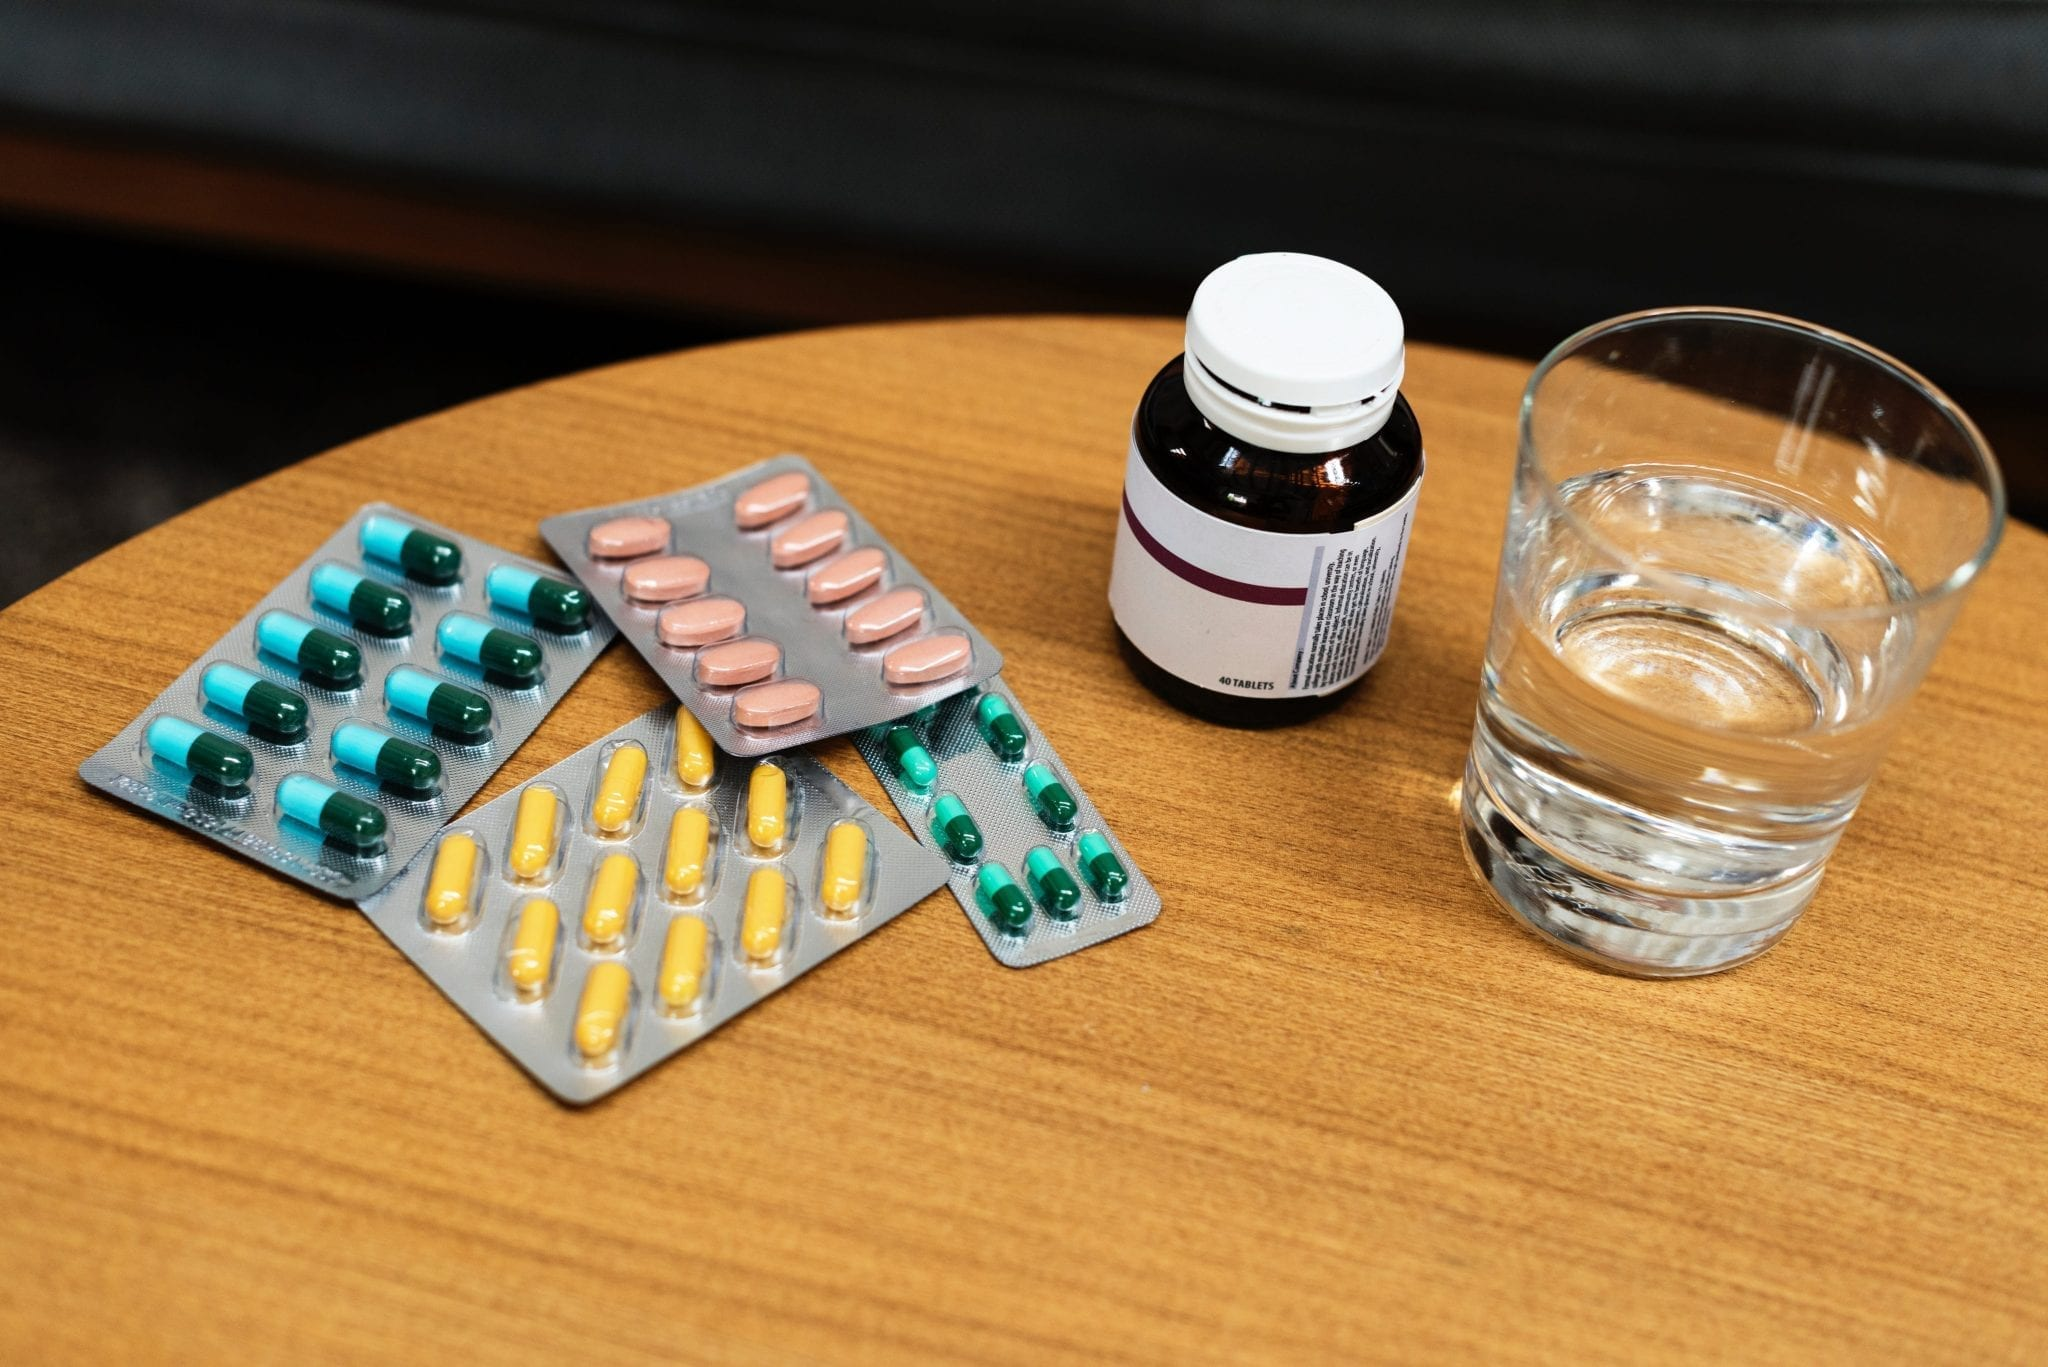 Often Disregarded Package Inserts Included Important Medication Information